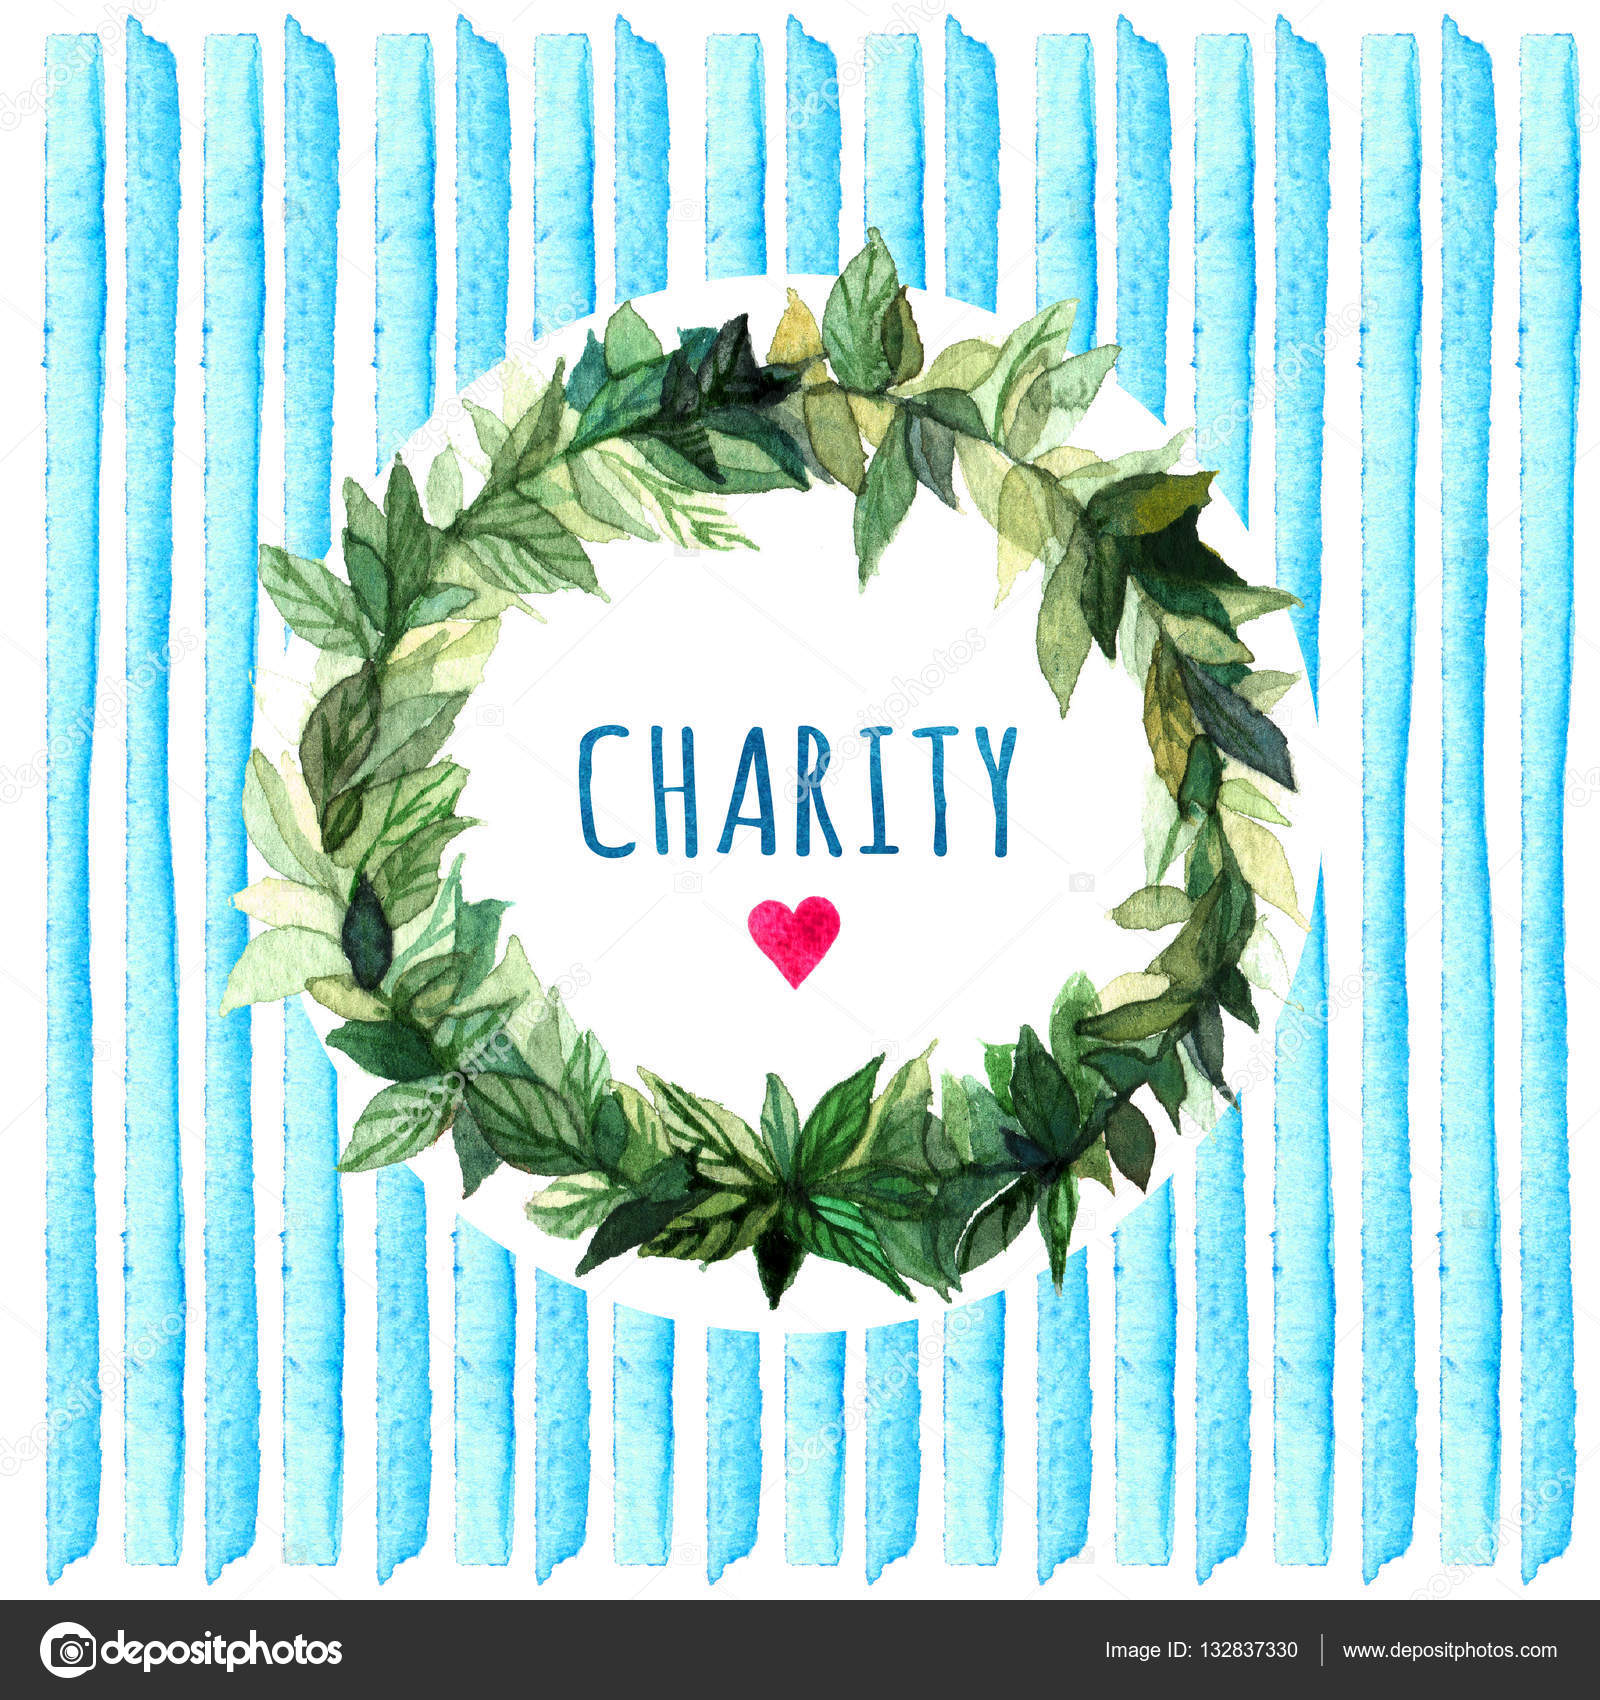 Word charity simple and cute floral circle wreath with spring floral circle wreath with spring branches leaves word charity watercolor creative greeting cards template retro style background kristyandbryce Choice Image